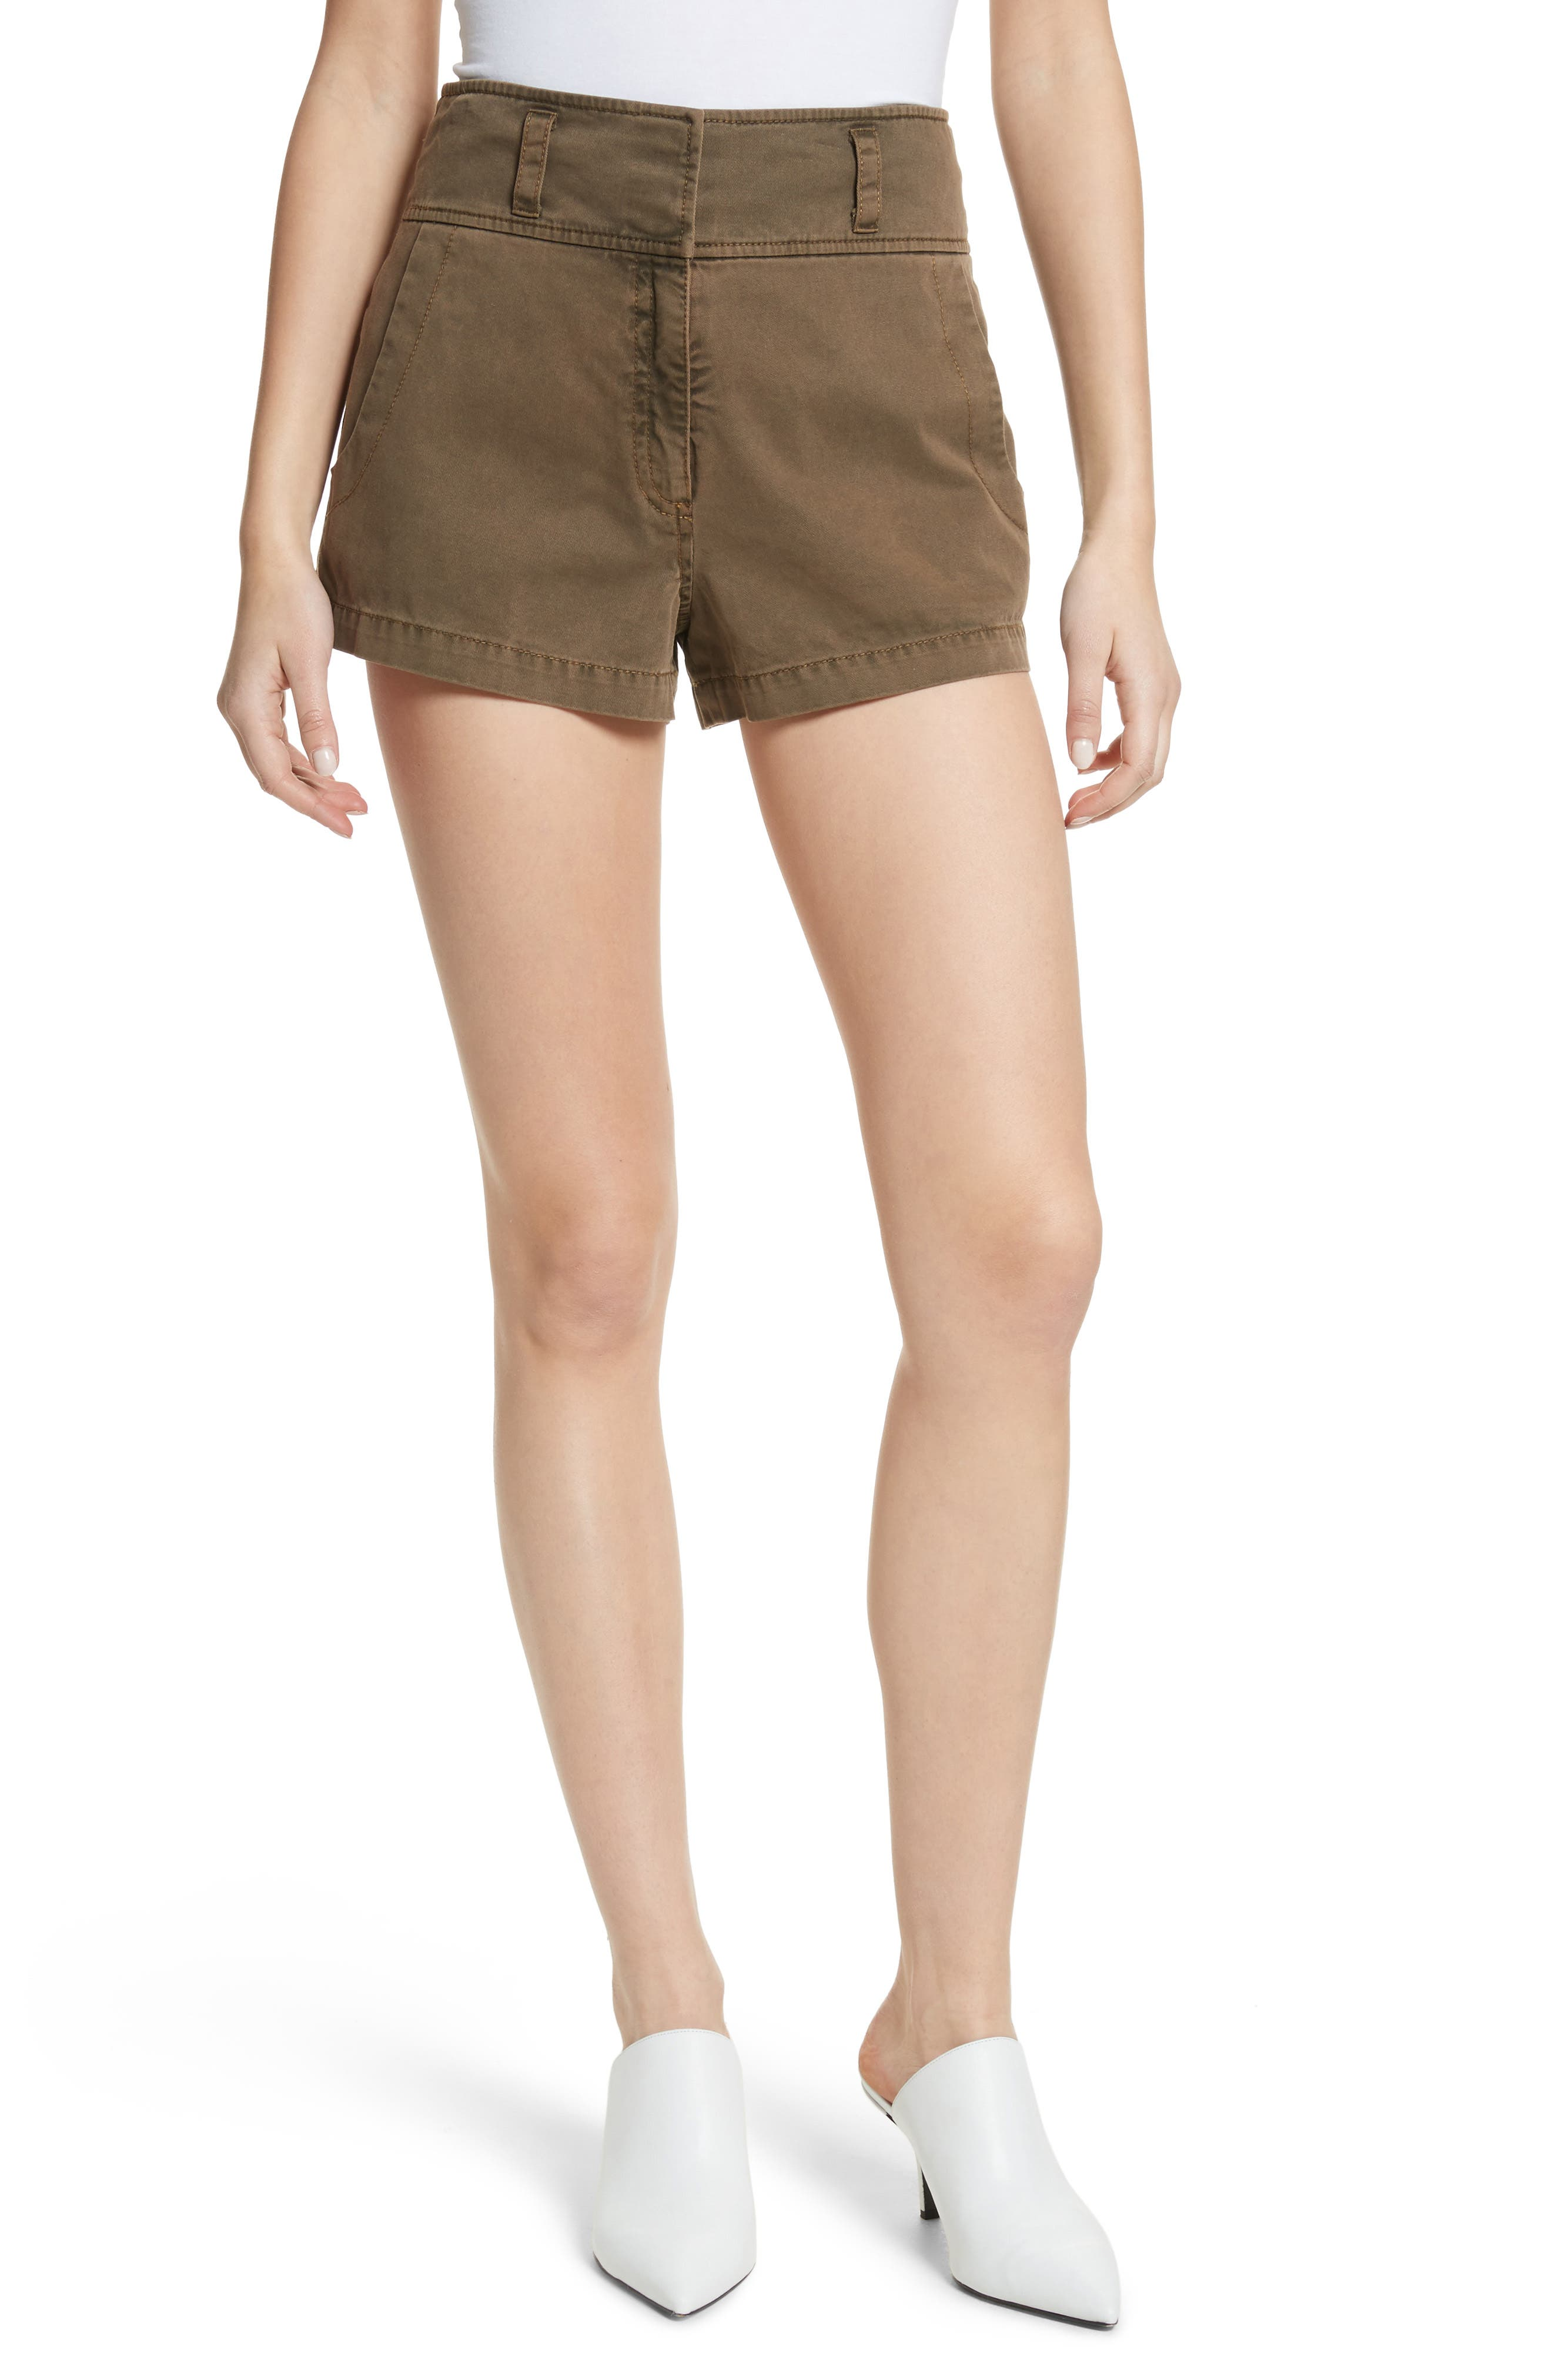 Tour Les Jour Shiloh Shorts,                         Main,                         color, Olive/ Amber